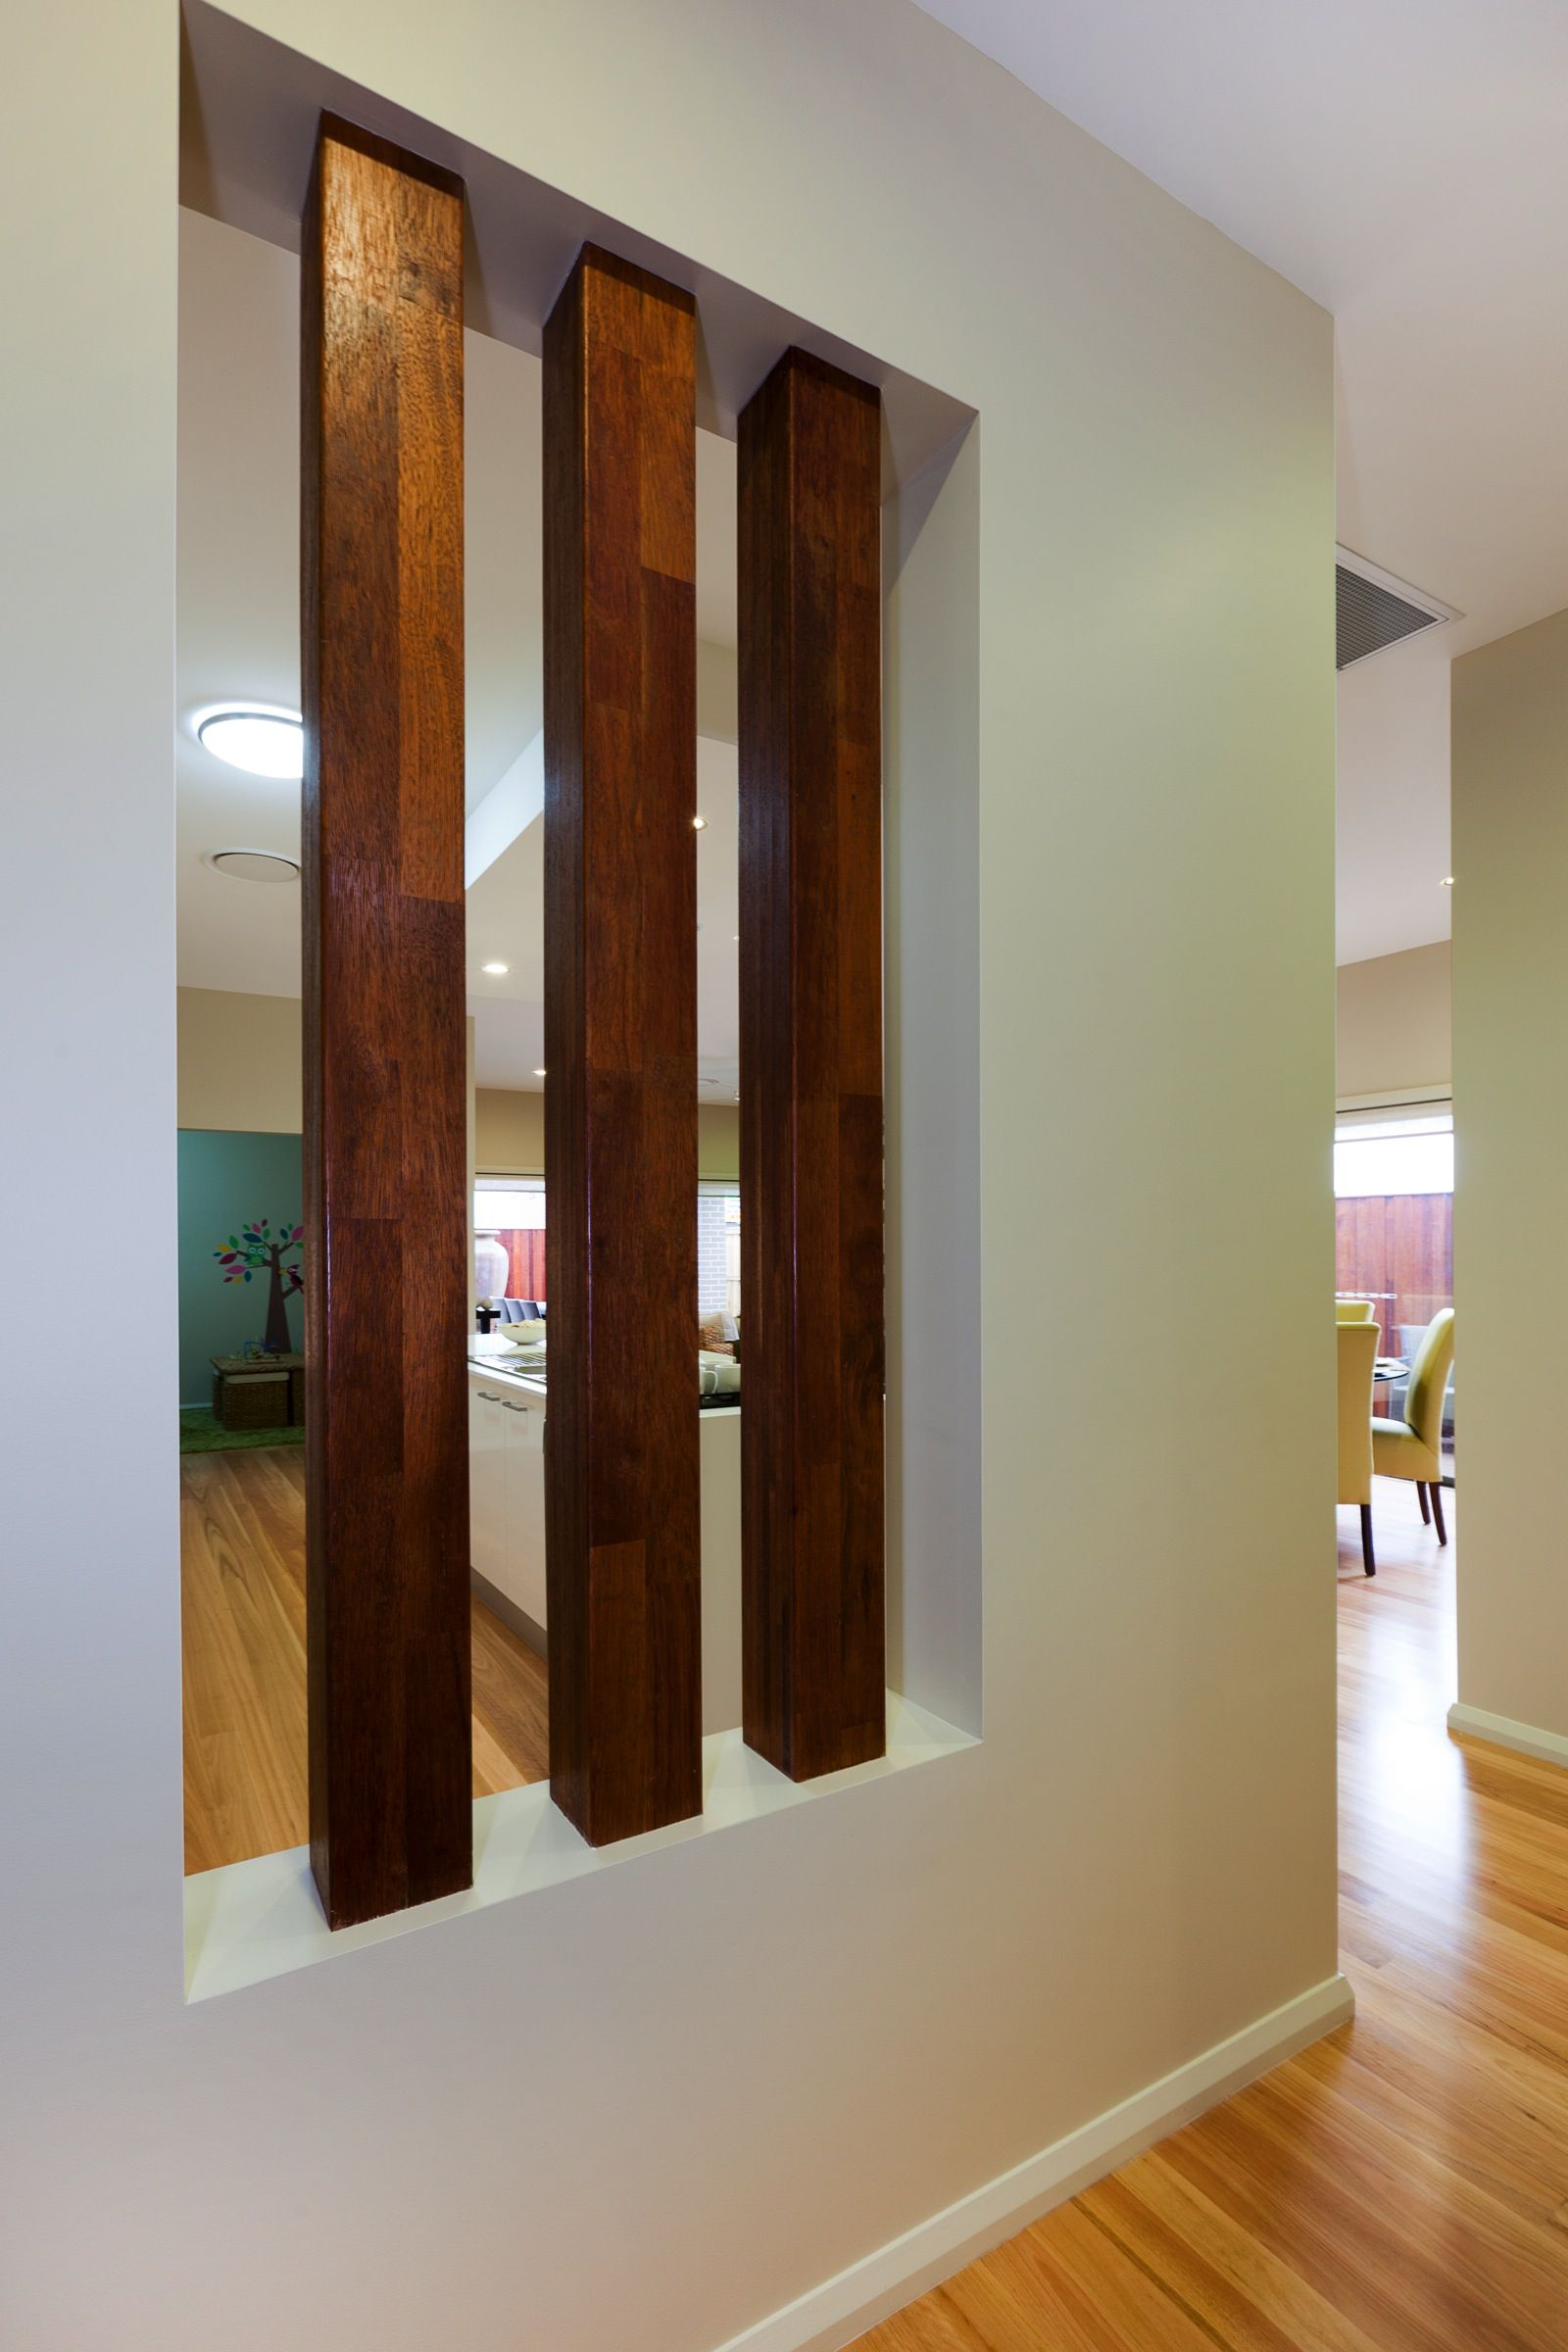 Interior Design Room Dividers: Room Partition Designs, Living Room Divider